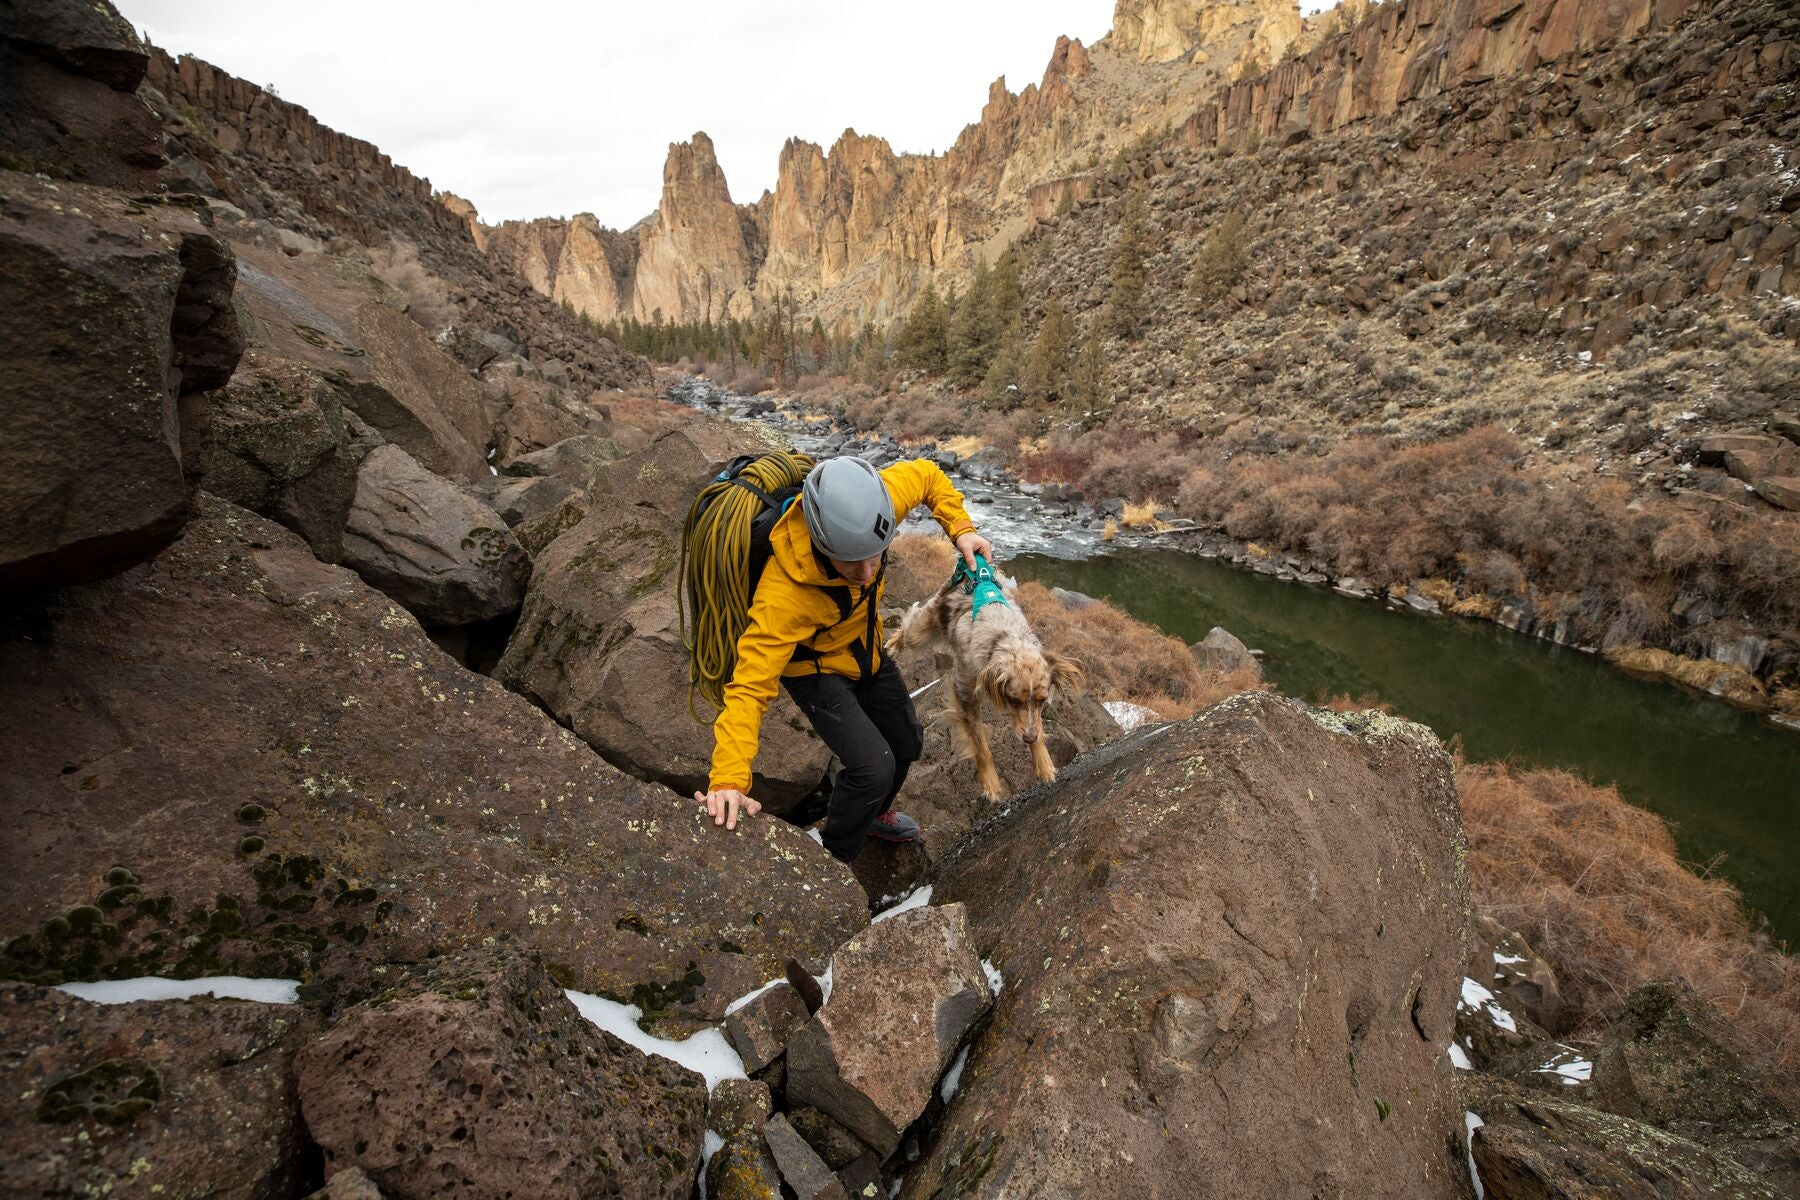 Climber lifts dog using web master harness with handle up onto rocks at the crag.